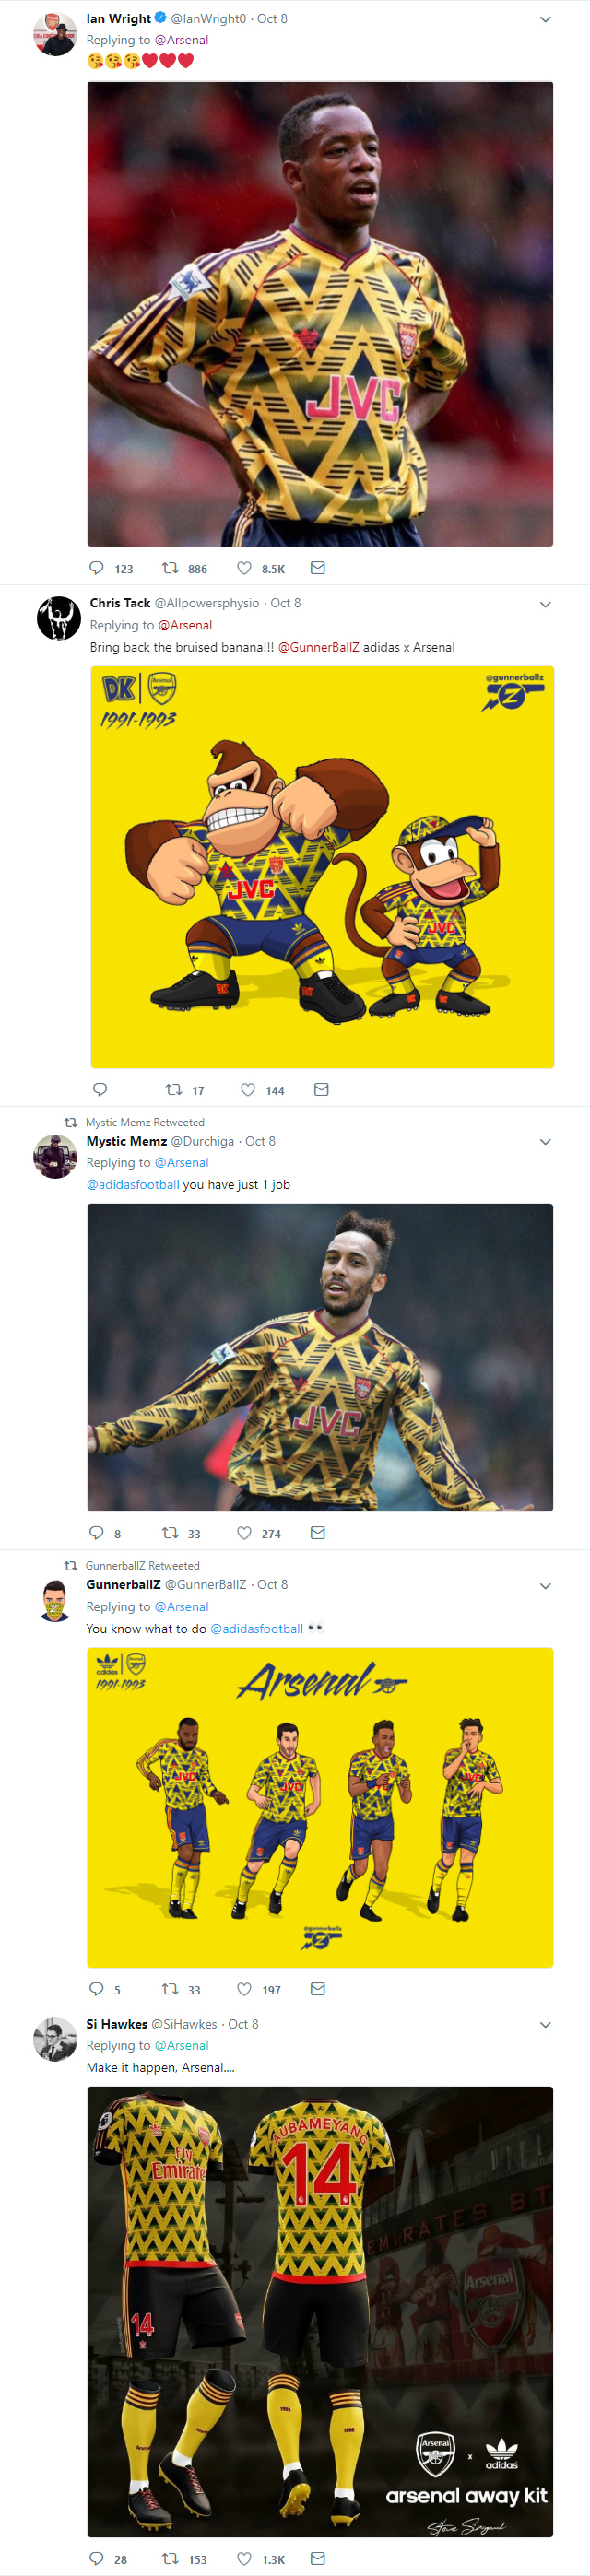 Arsenal fans demand the return of the iconic 'Bruised Banana' kit after new partnership with adidas